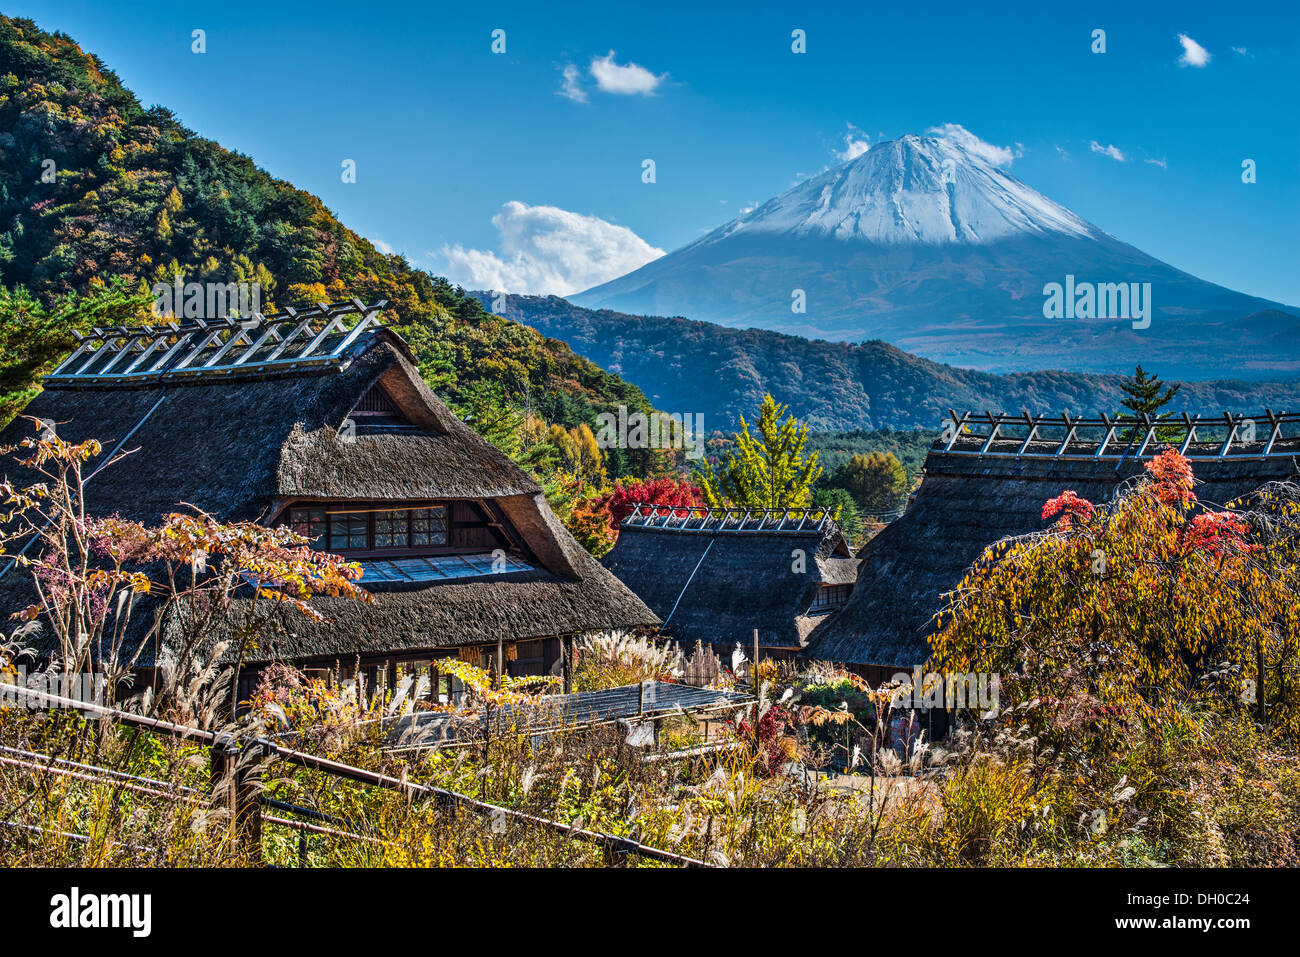 Mt Fuji viewed from Iyashinofurusato near Lake Saiko in Japan. - Stock Image